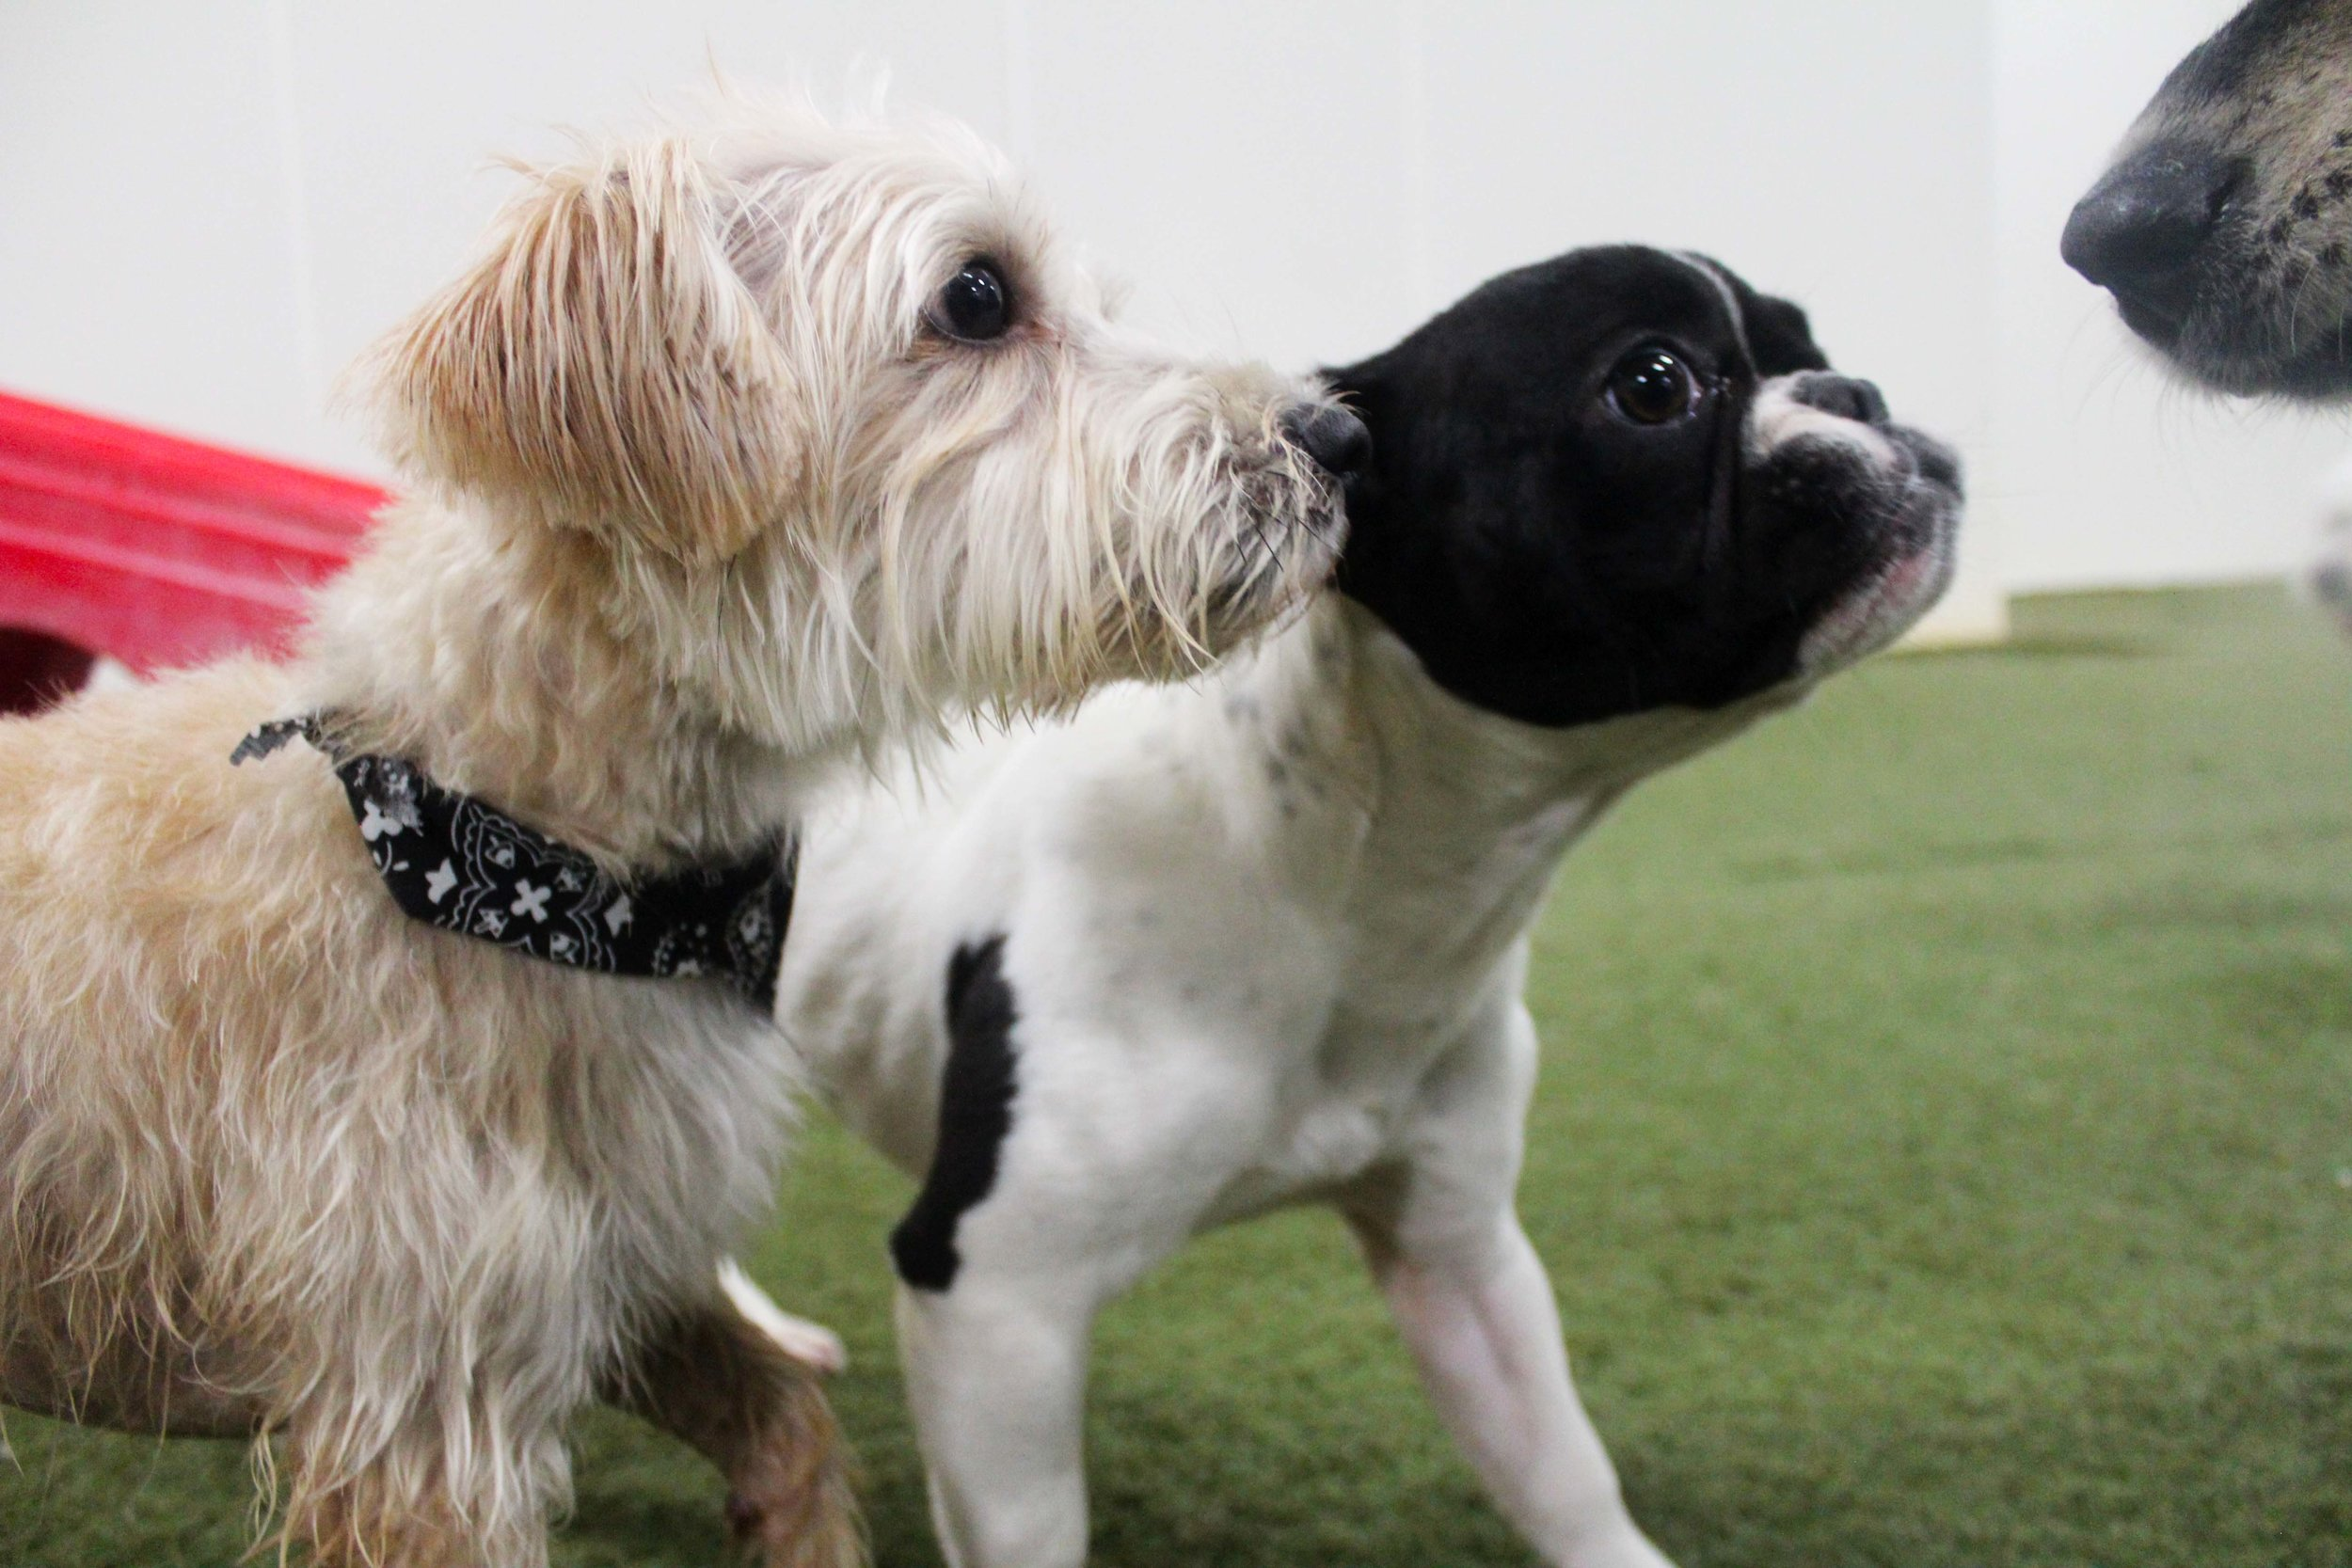 When Coco comes in for Dog Daycare at Pet Nation Lodge there are always friends waiting to see her come in and play. Maybe not always the group leader. but she's definitely the one that holds the group together.